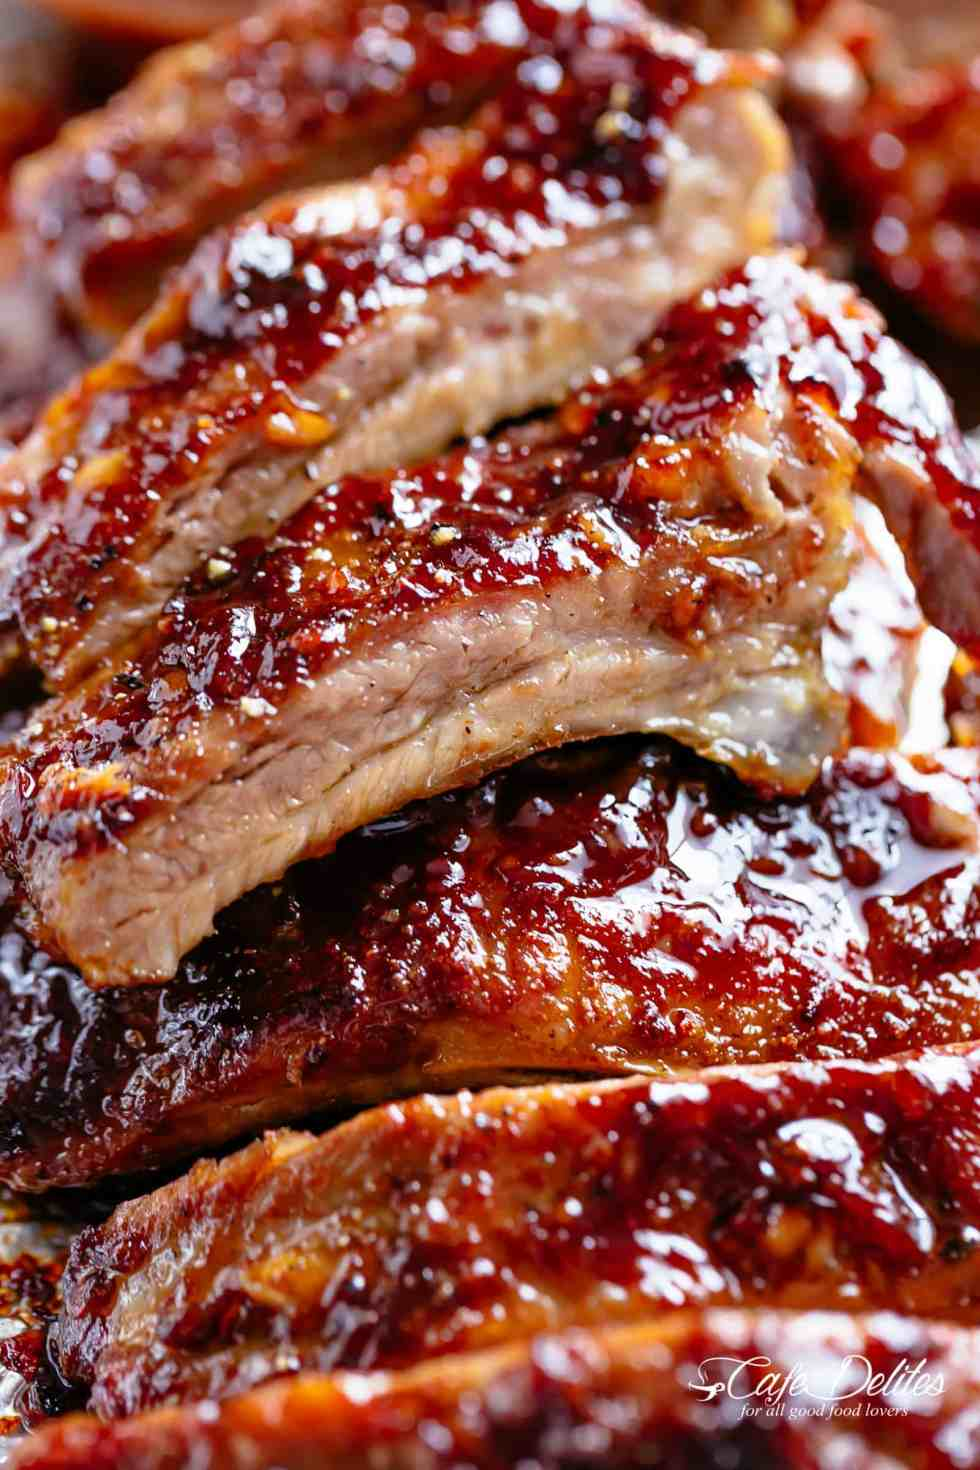 Juicy Barbecue Ribs in the oven | cafedelites.com